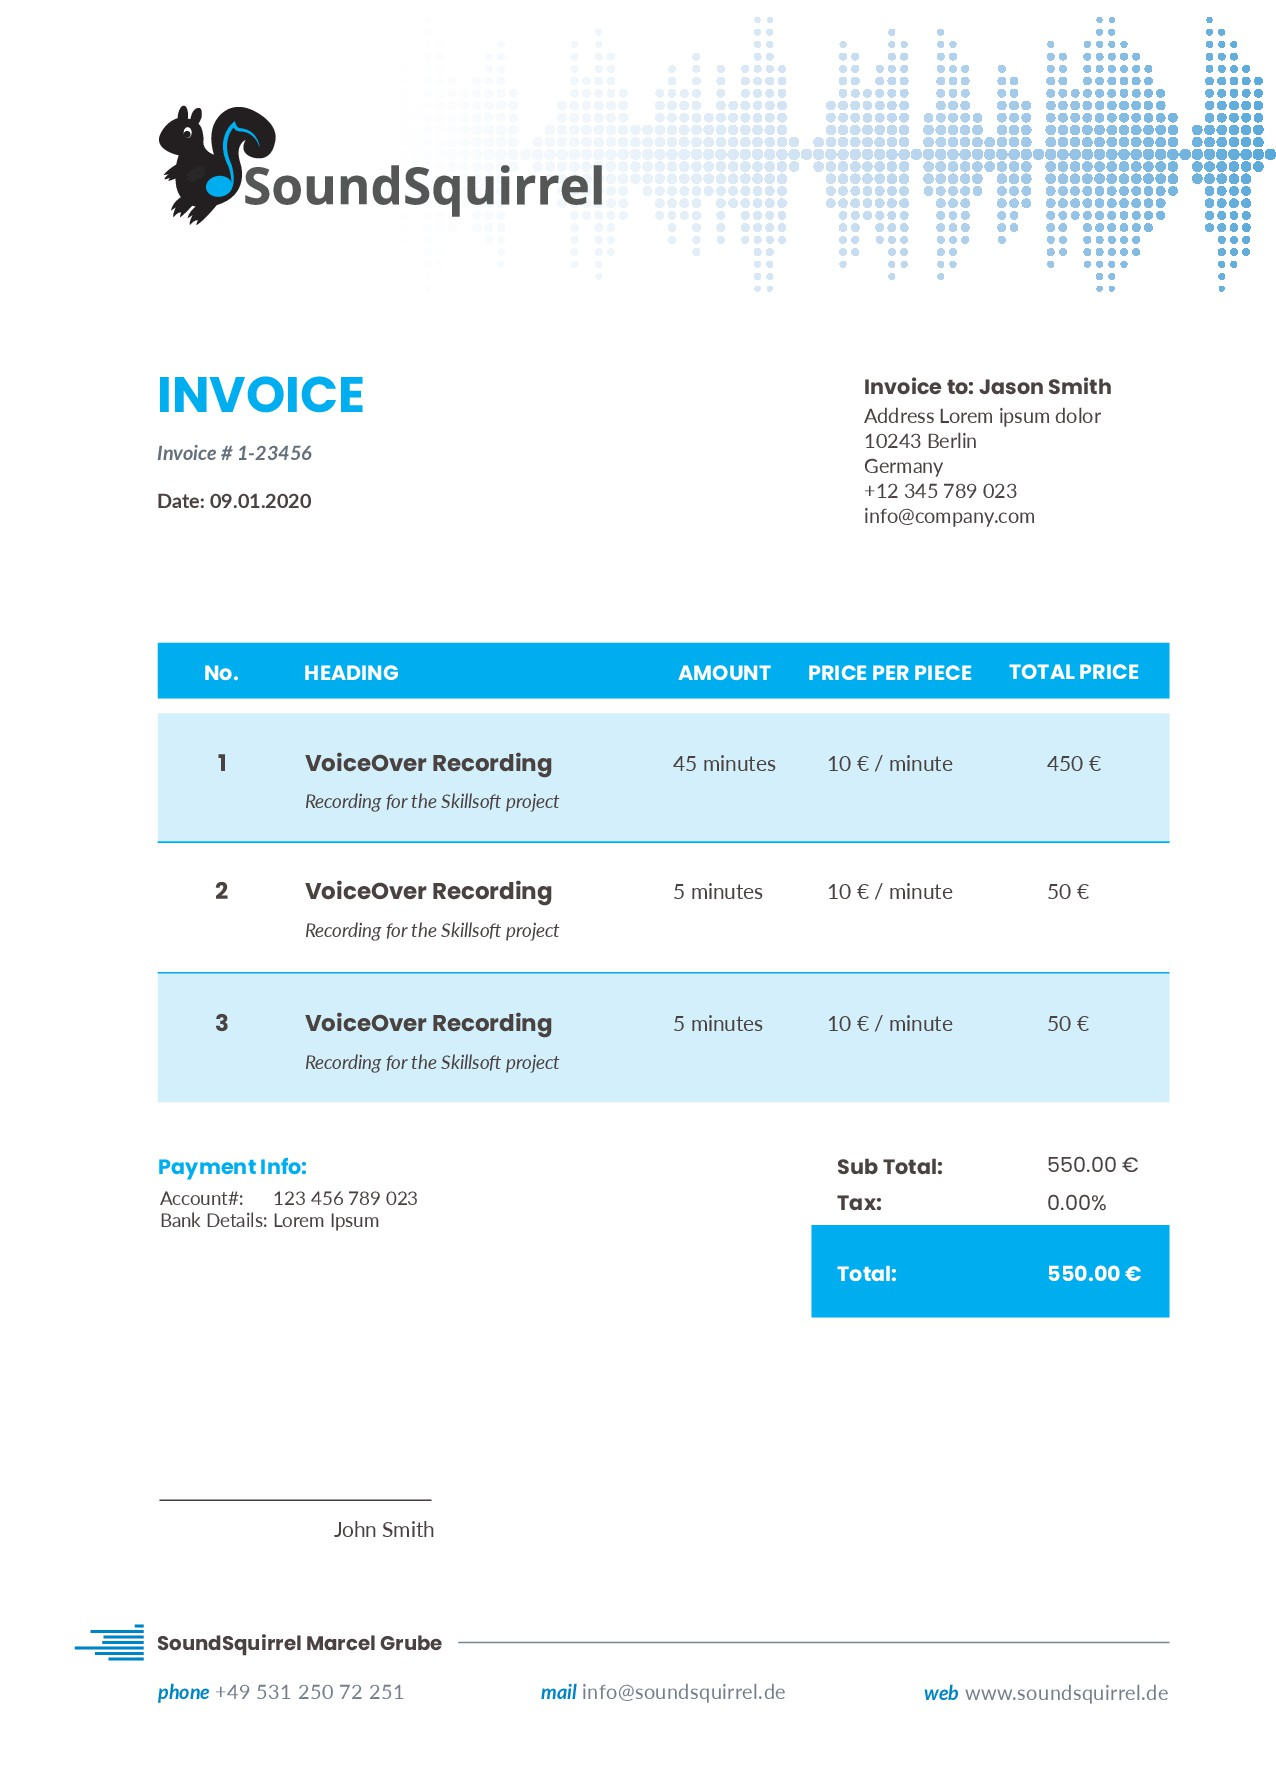 New invoice-design and letterhead for a German VoiceOver studio